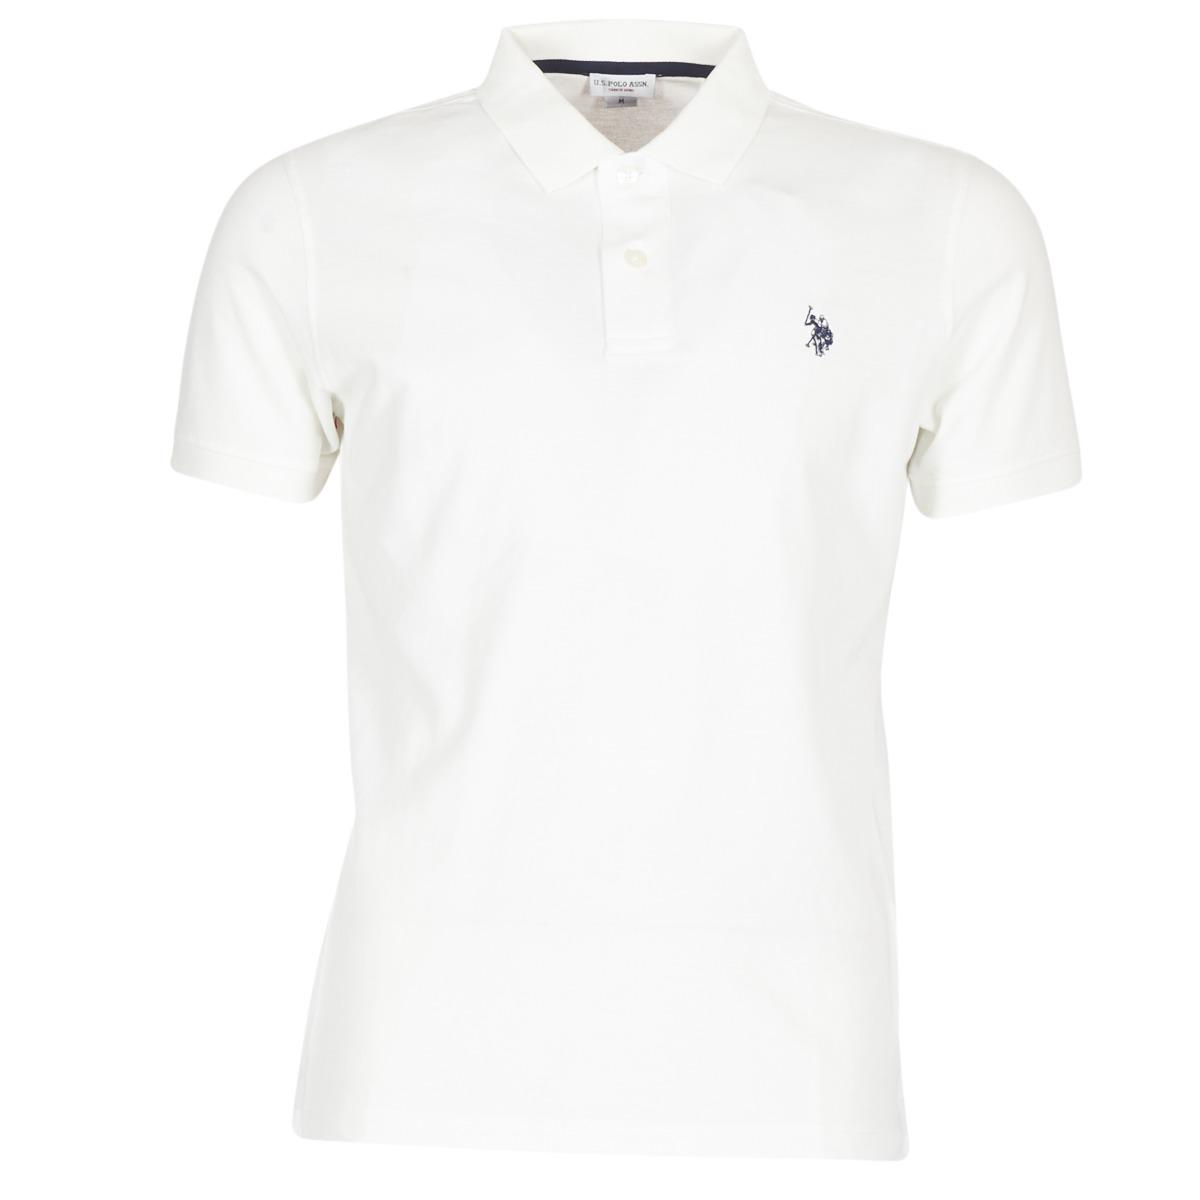 11235a24 U.S. POLO ASSN. Institutional Polo Men's Polo Shirt In White in ...